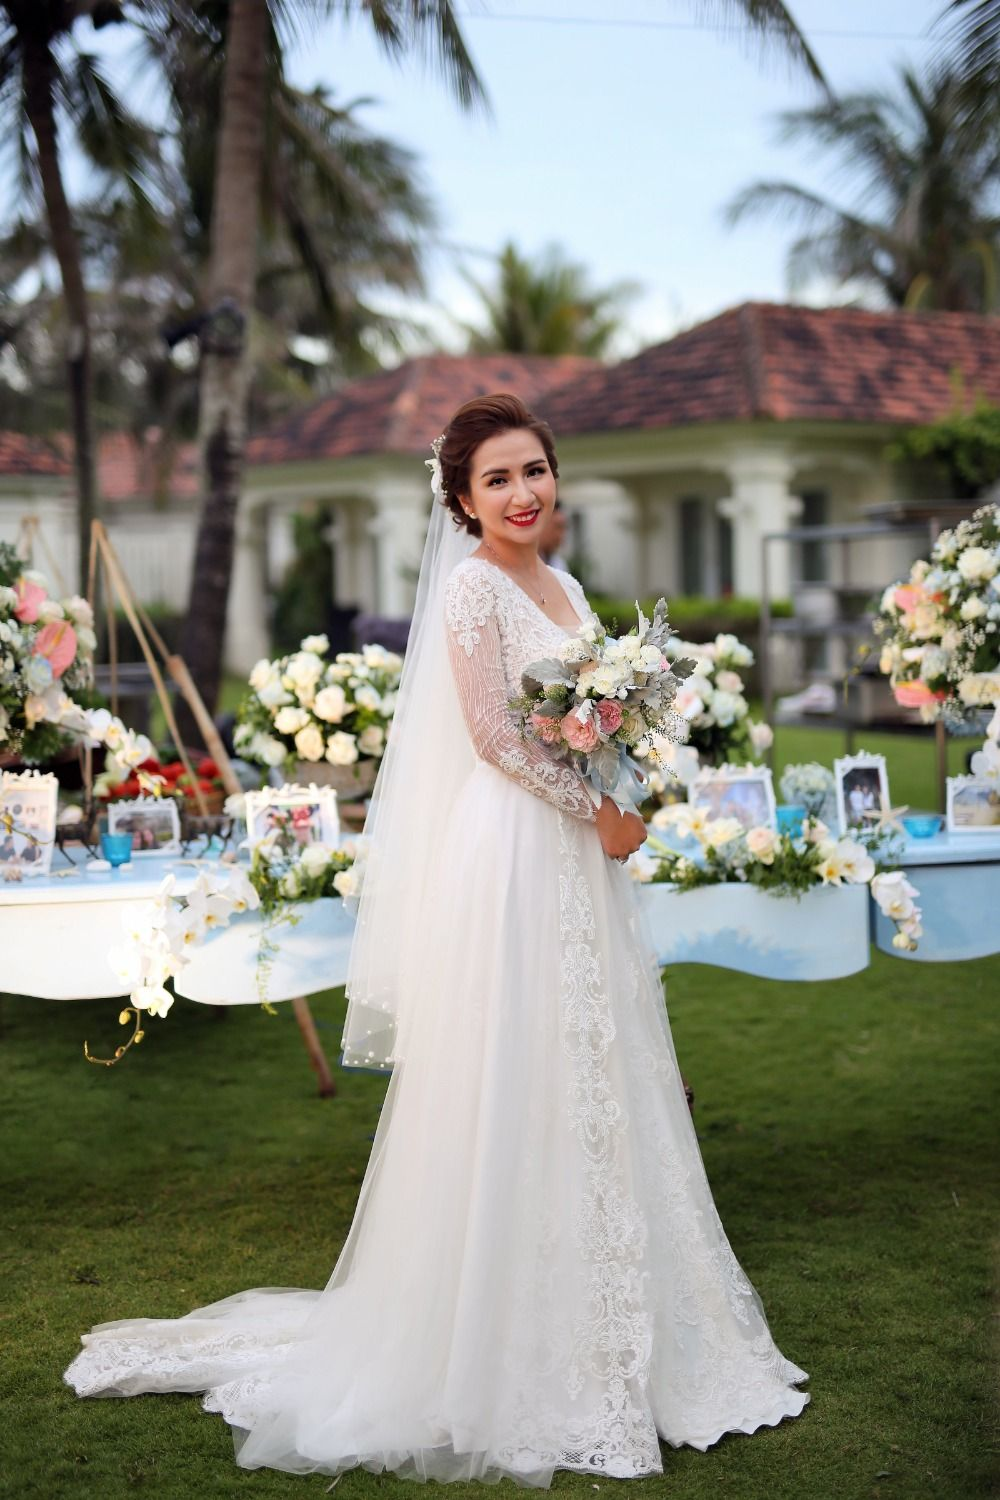 How To Have The Perfect Beach Wedding In Vietnam